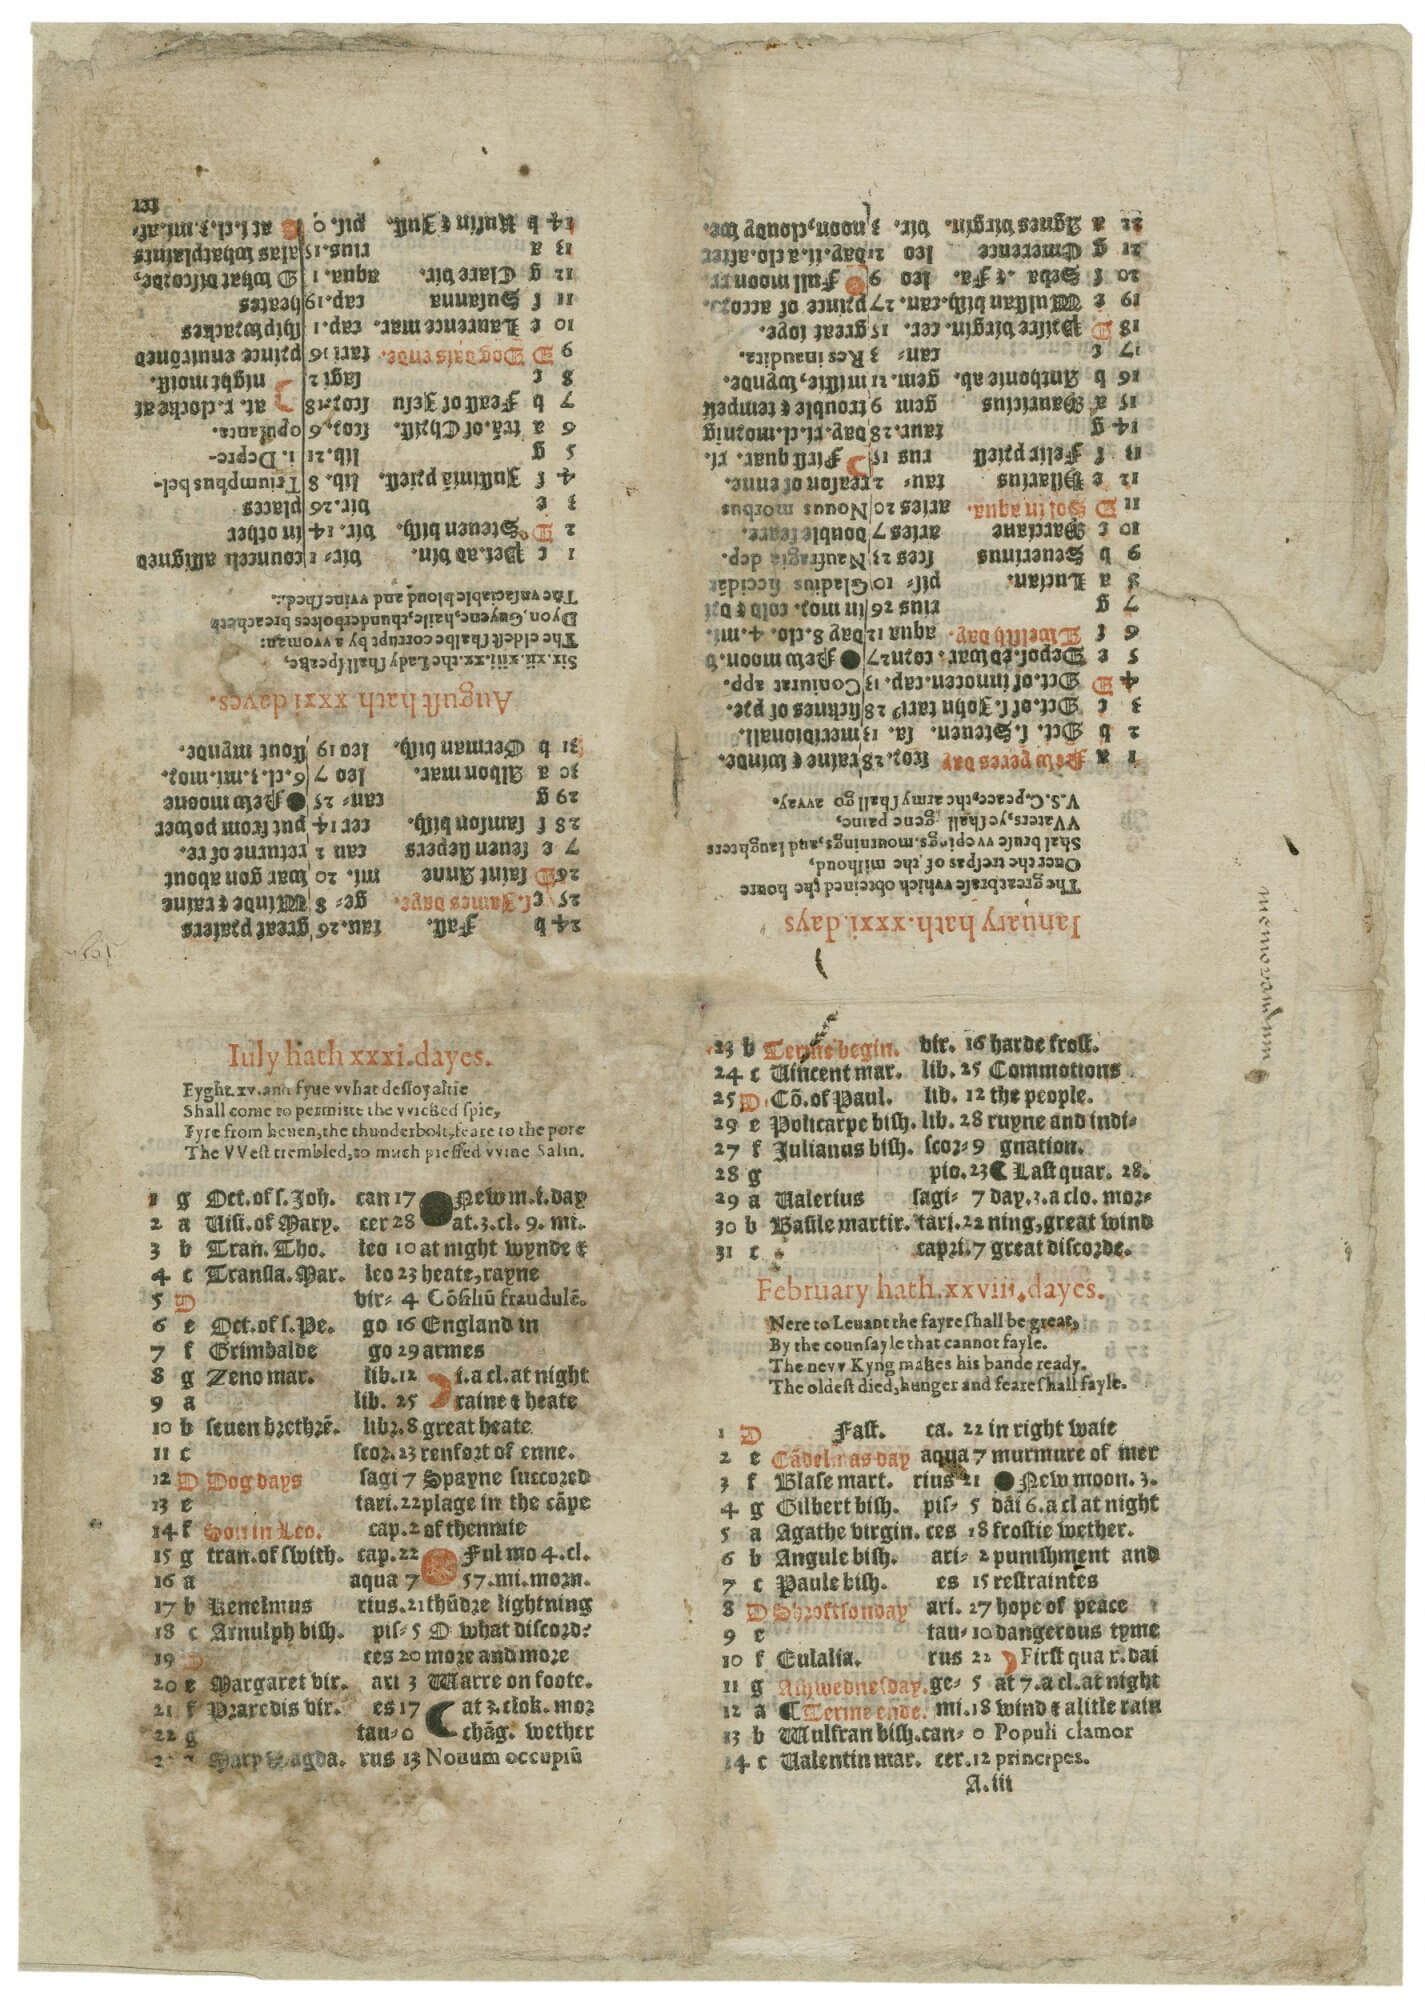 Unlike later almanacs, this continues one month on after another, rather than giving each month its own page or opening. If you look at the top right page, you'll see the start of January, which continues onto the bottom right page.